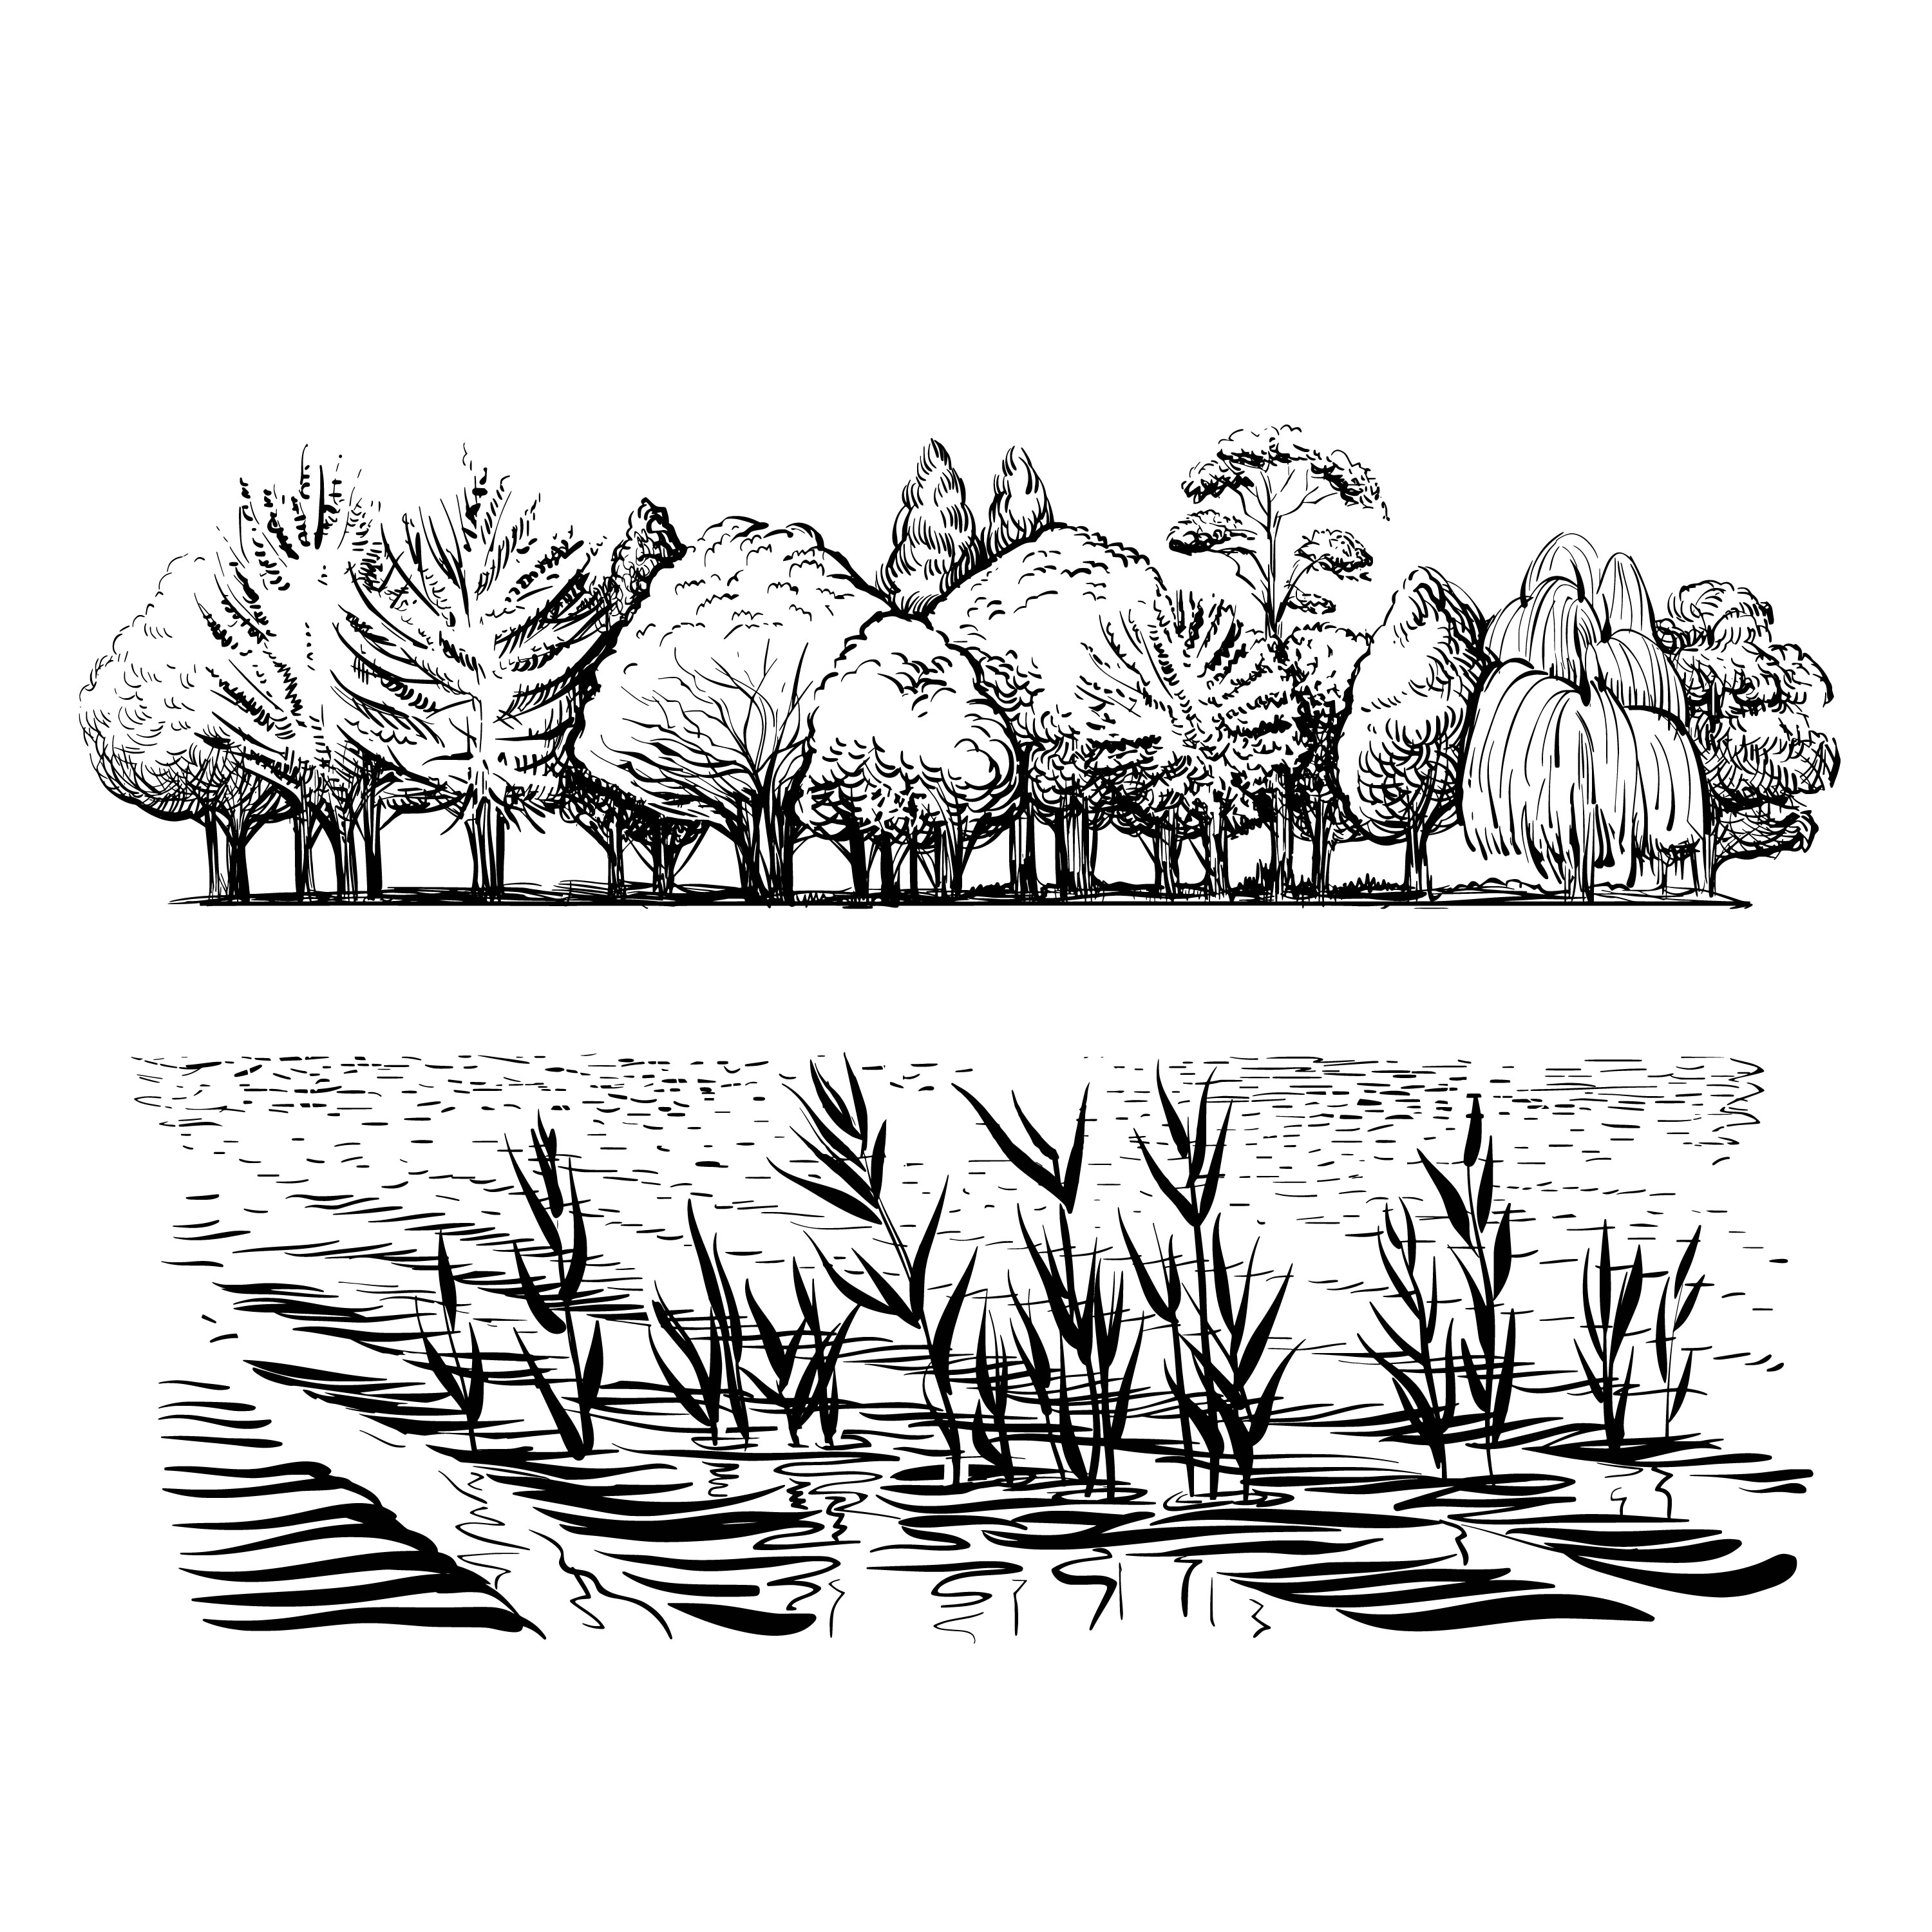 AZSG Willow Trees / River / Reed Clear Stamps For DIY Scrapbooking Decorative Card Making Craft Fun Decoration Supplies 10x15cm